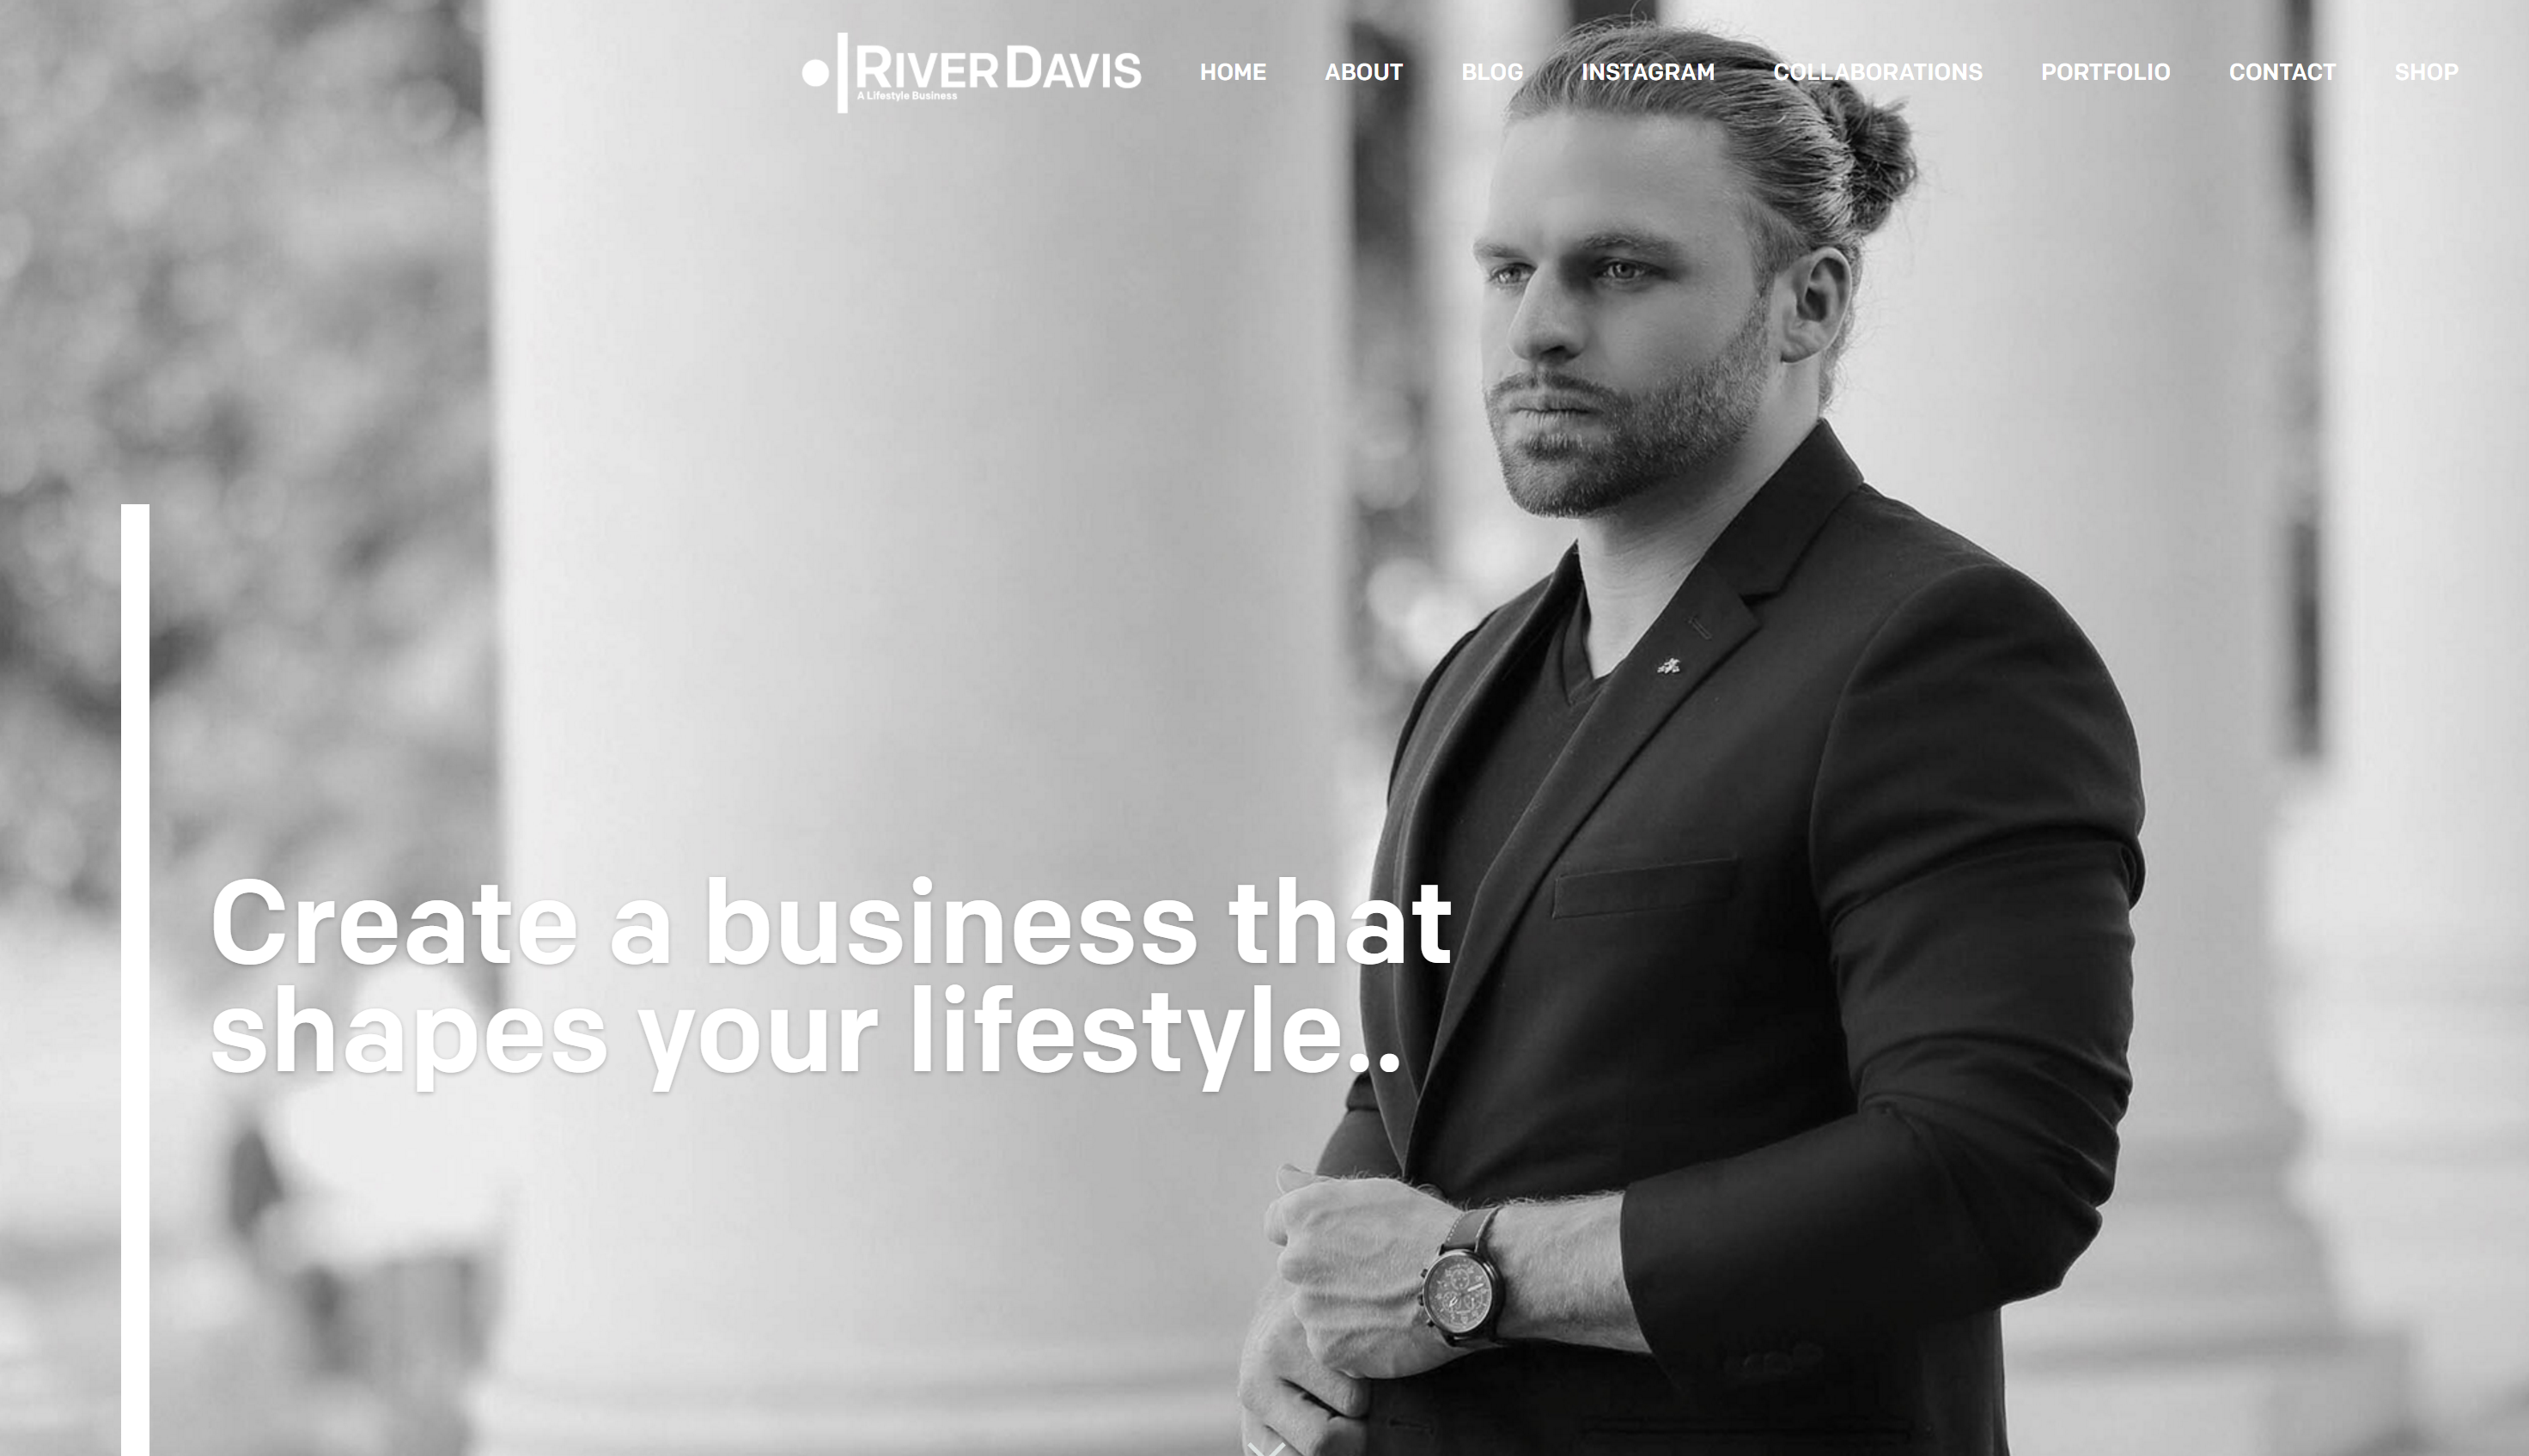 Home Page for River.com A Lifestyle Business